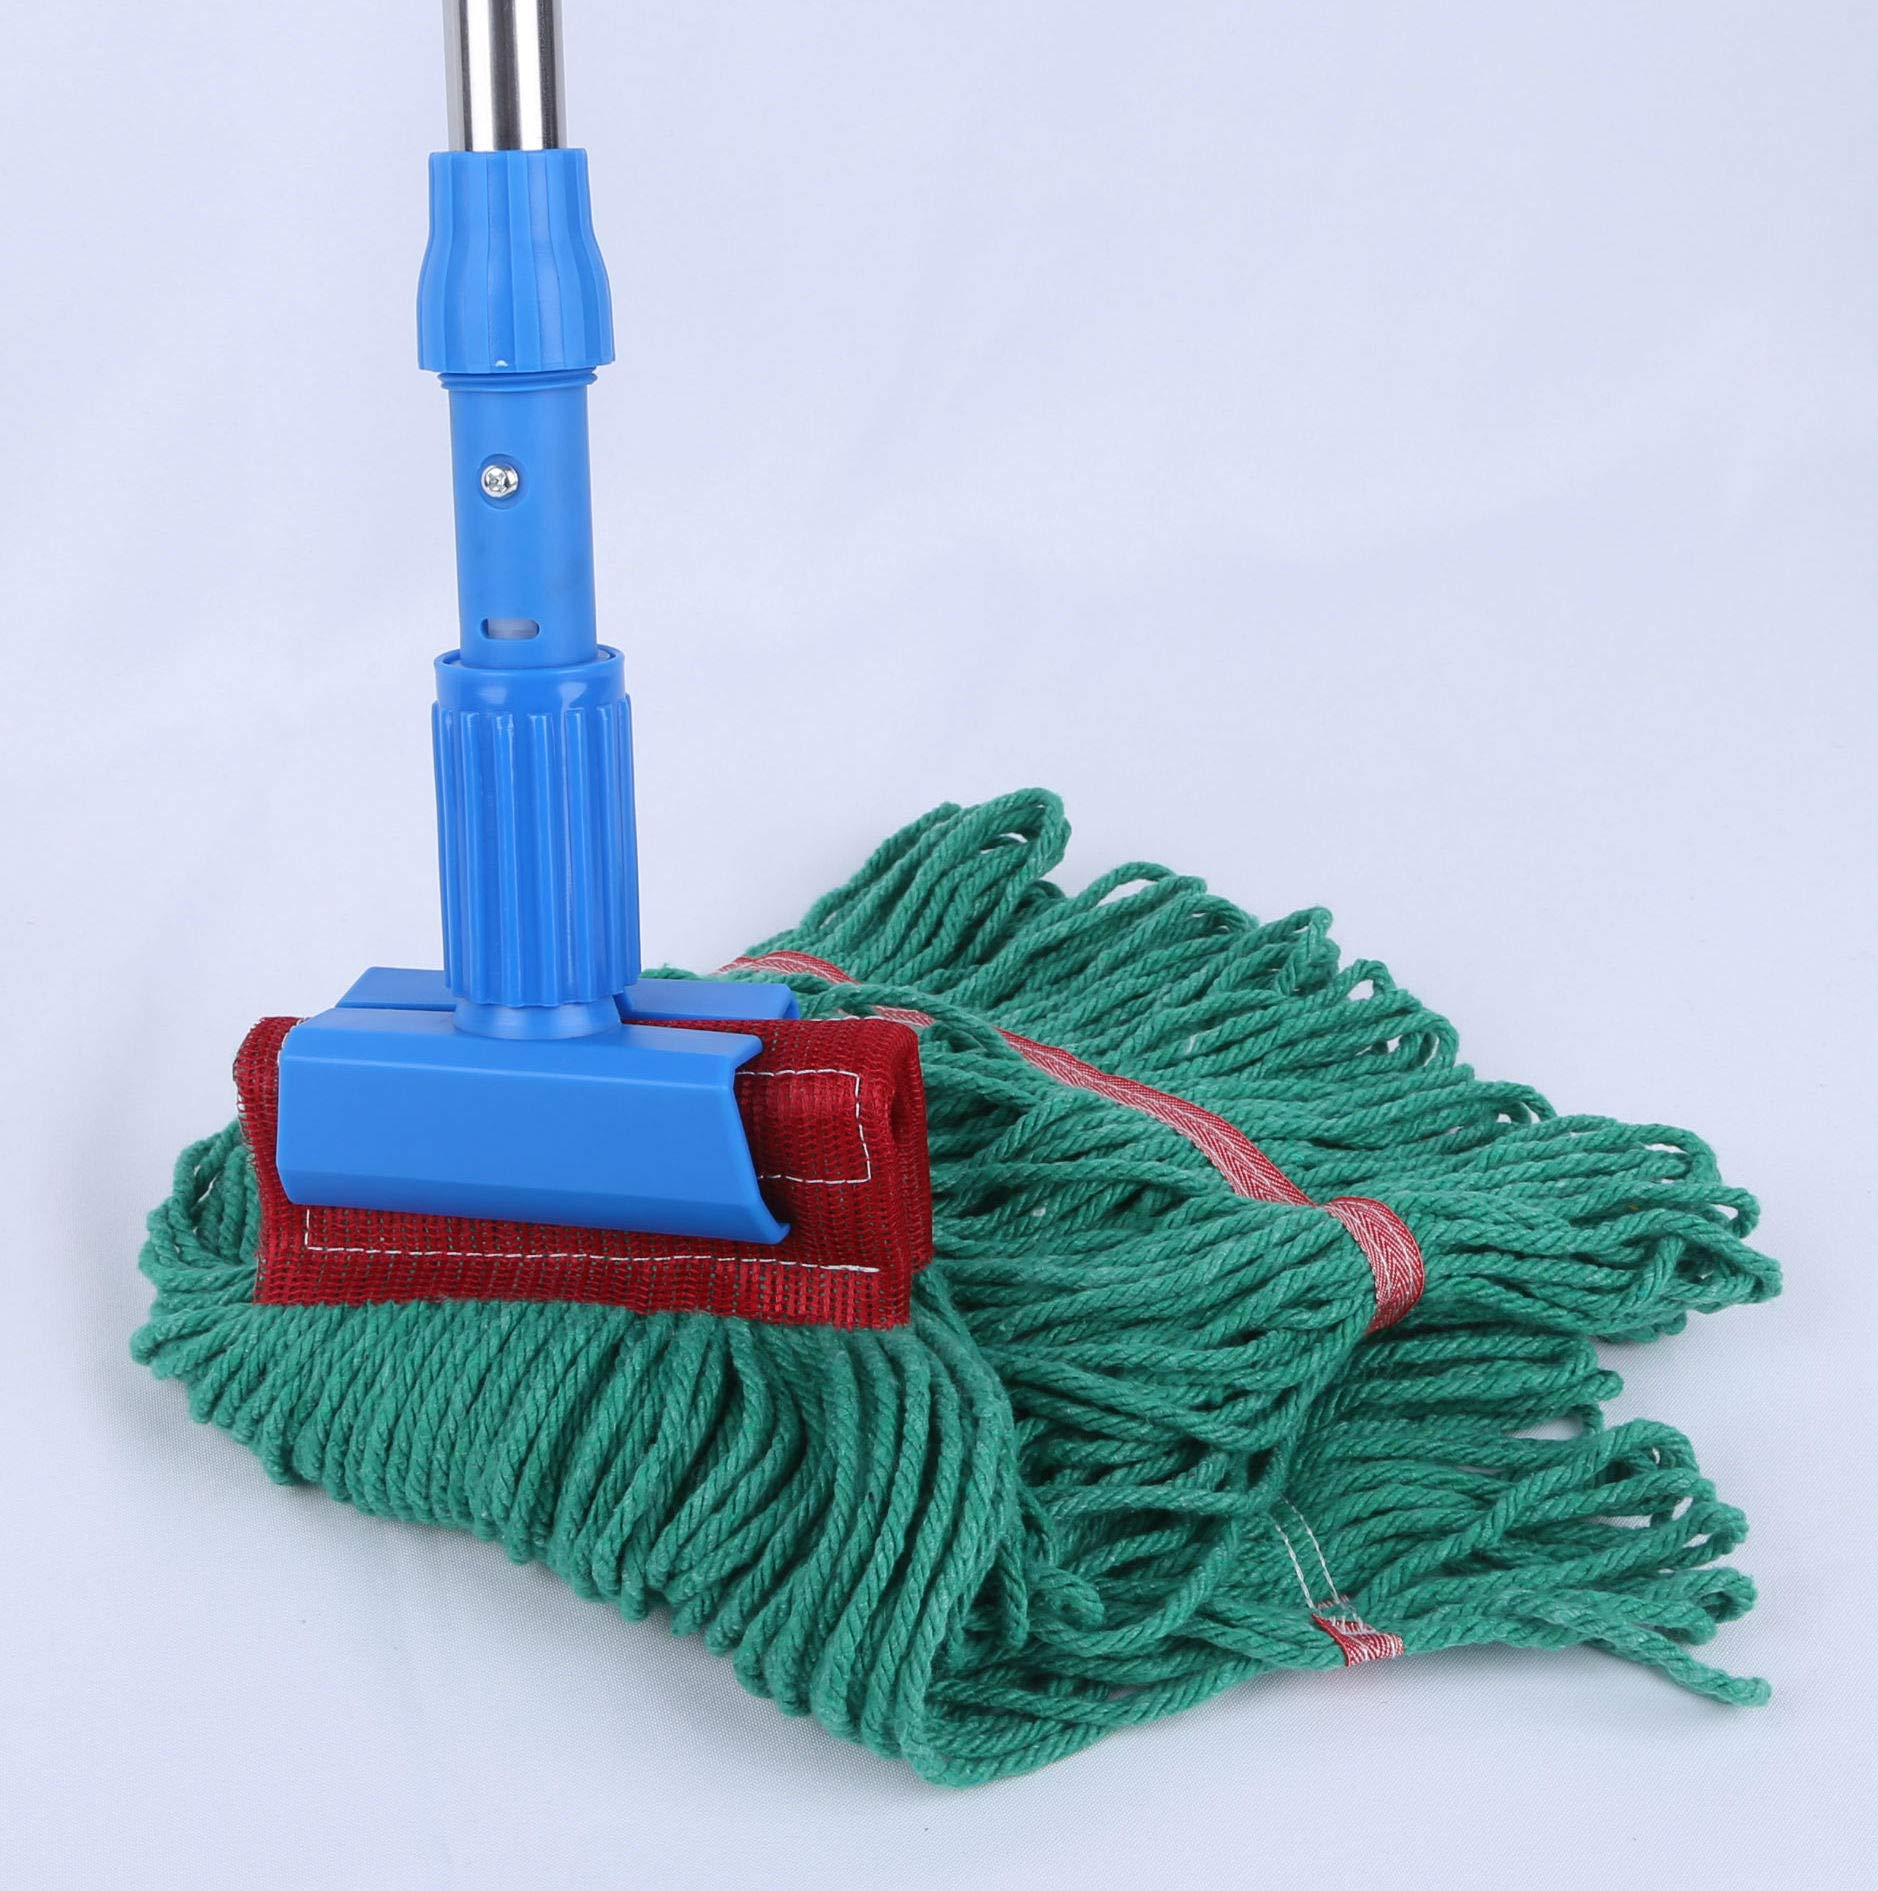 Loop-End Mop Heads Polyester Cotton 18-Inch Large, Green 4-Pack by QIPENG (Image #4)